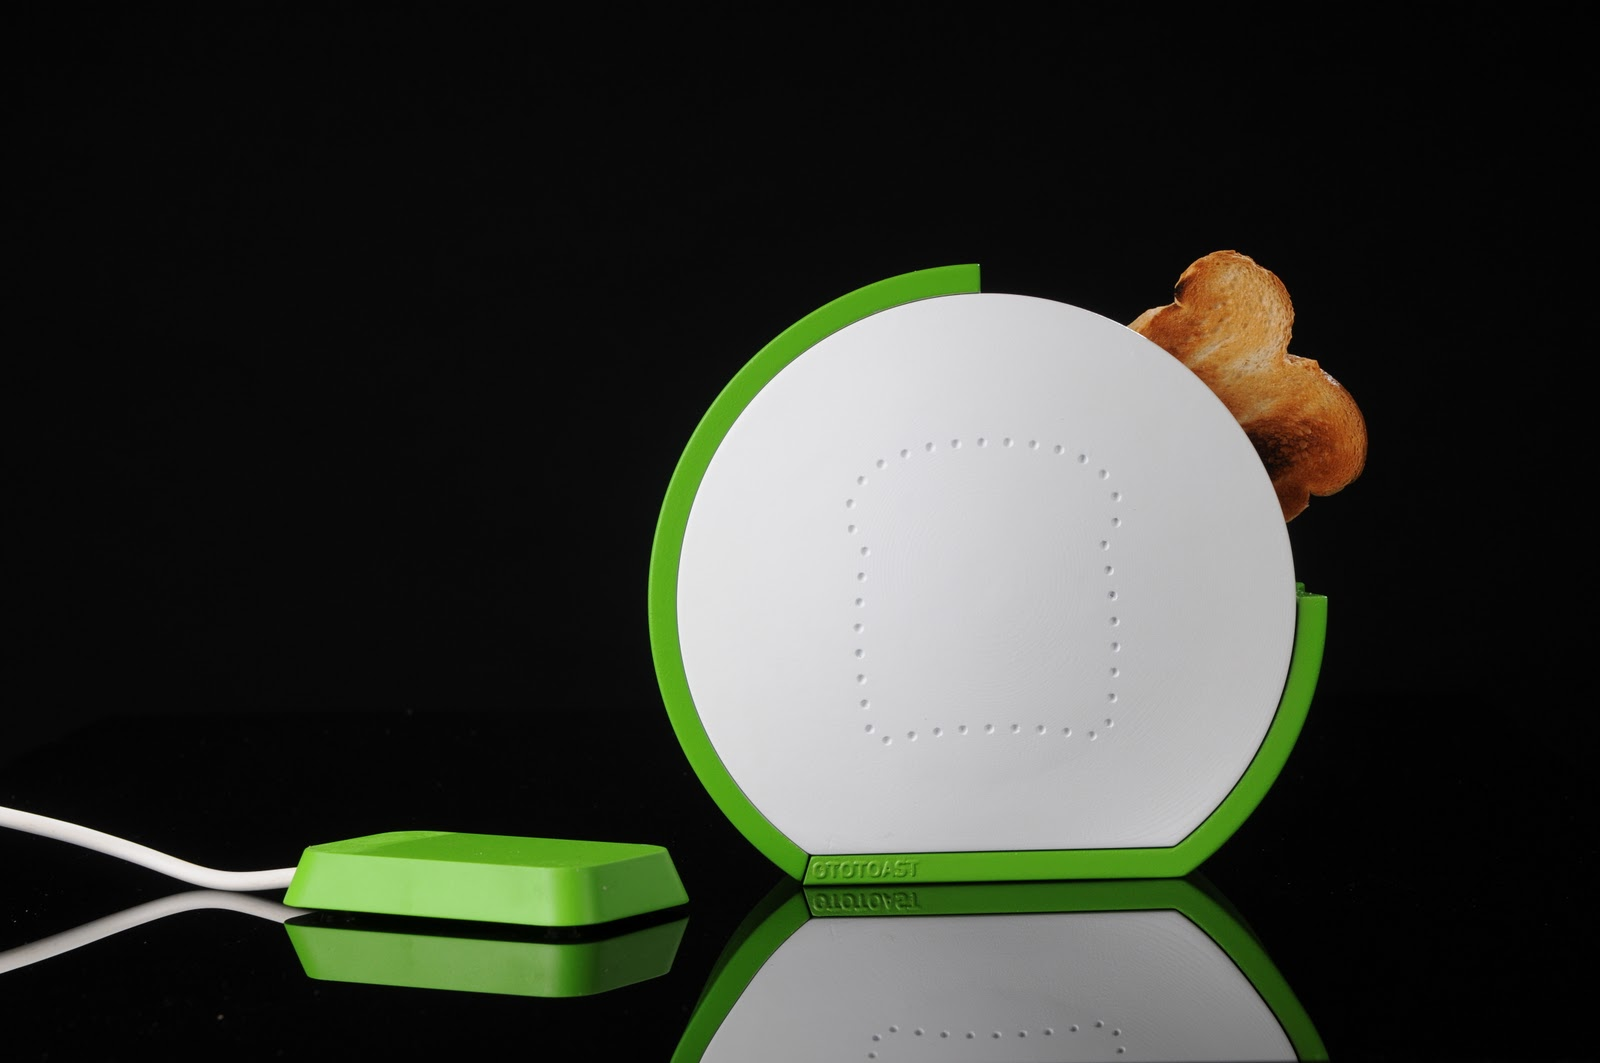 awesome-design-ideas-ototoast-Toaster-Yaksein-Eliran-3